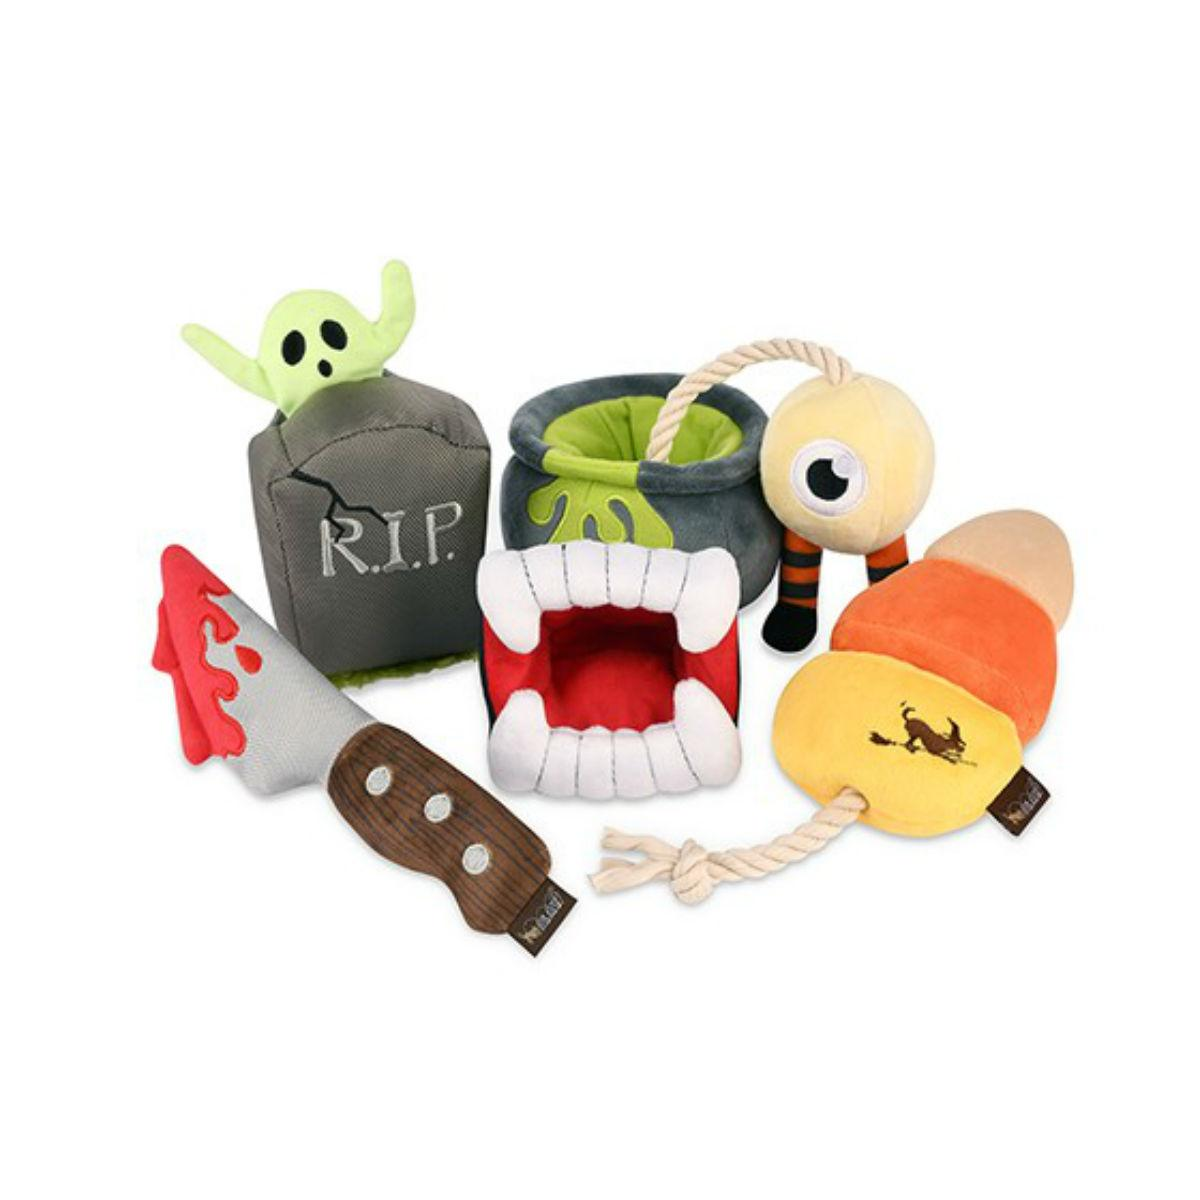 P.L.A.Y. Howling Haunts Dog Toy Collection - 5 Piece Set